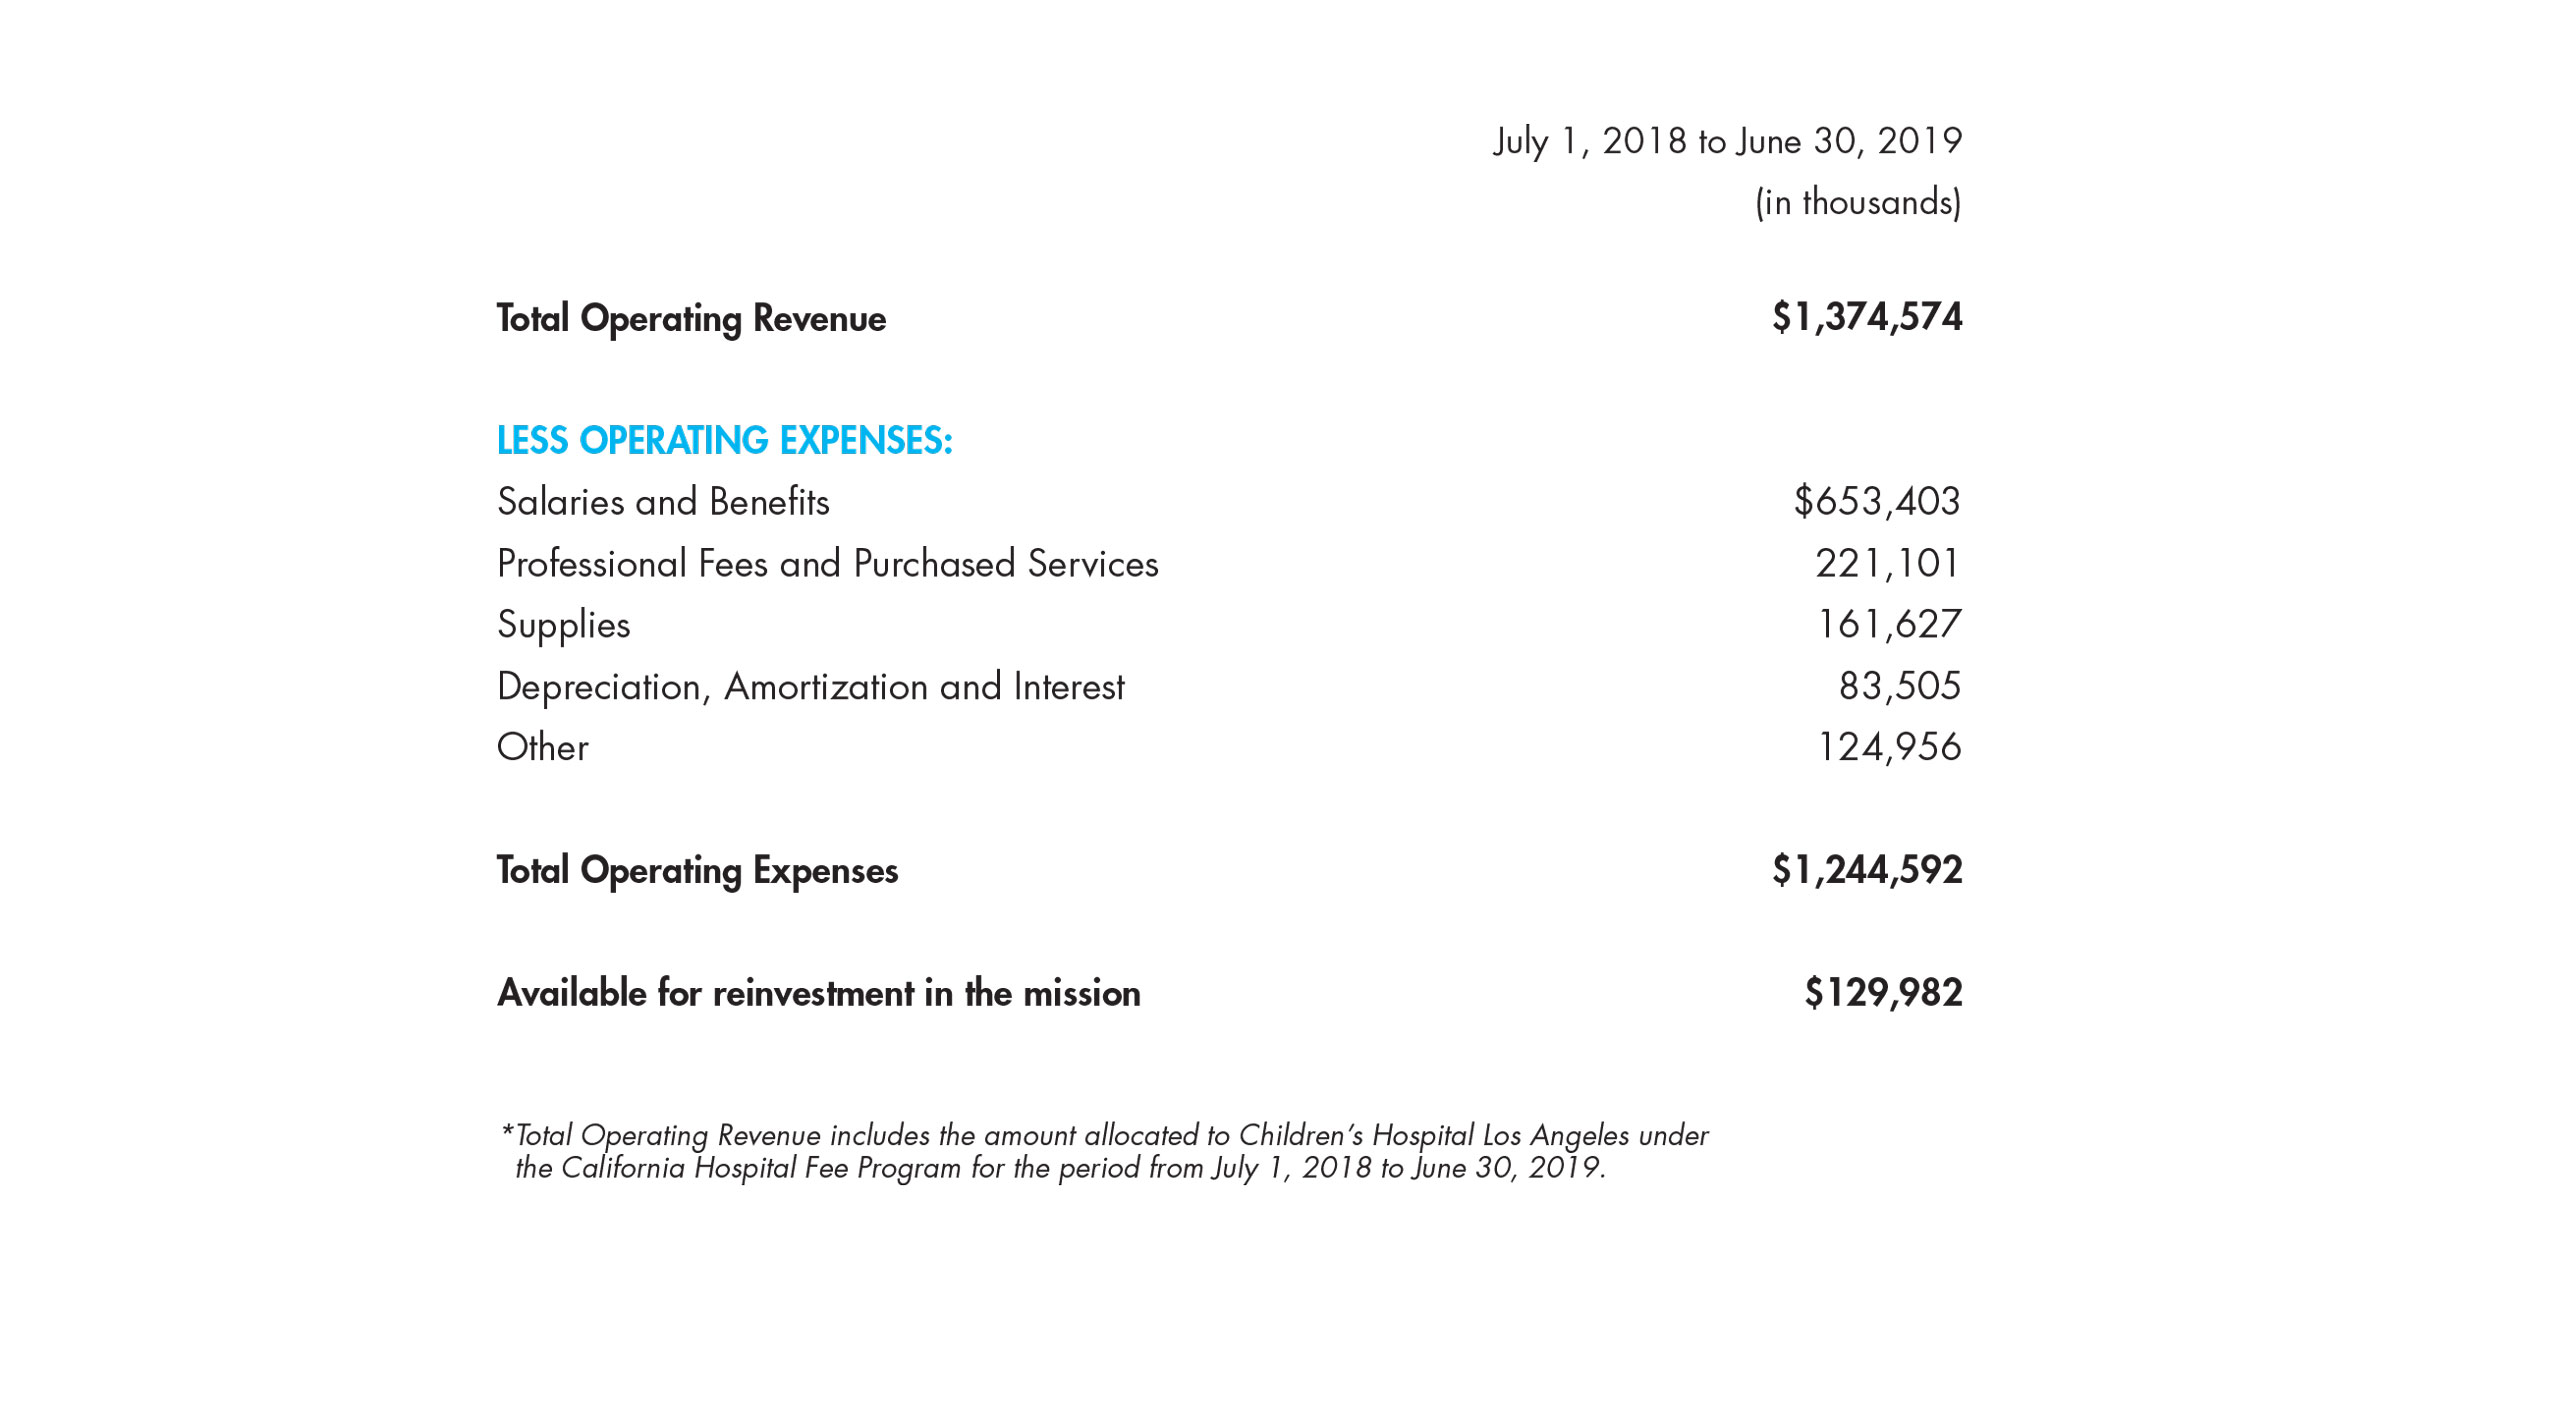 CHLA-Annual-Report-FY19-Statement-of-Operations-02.jpg